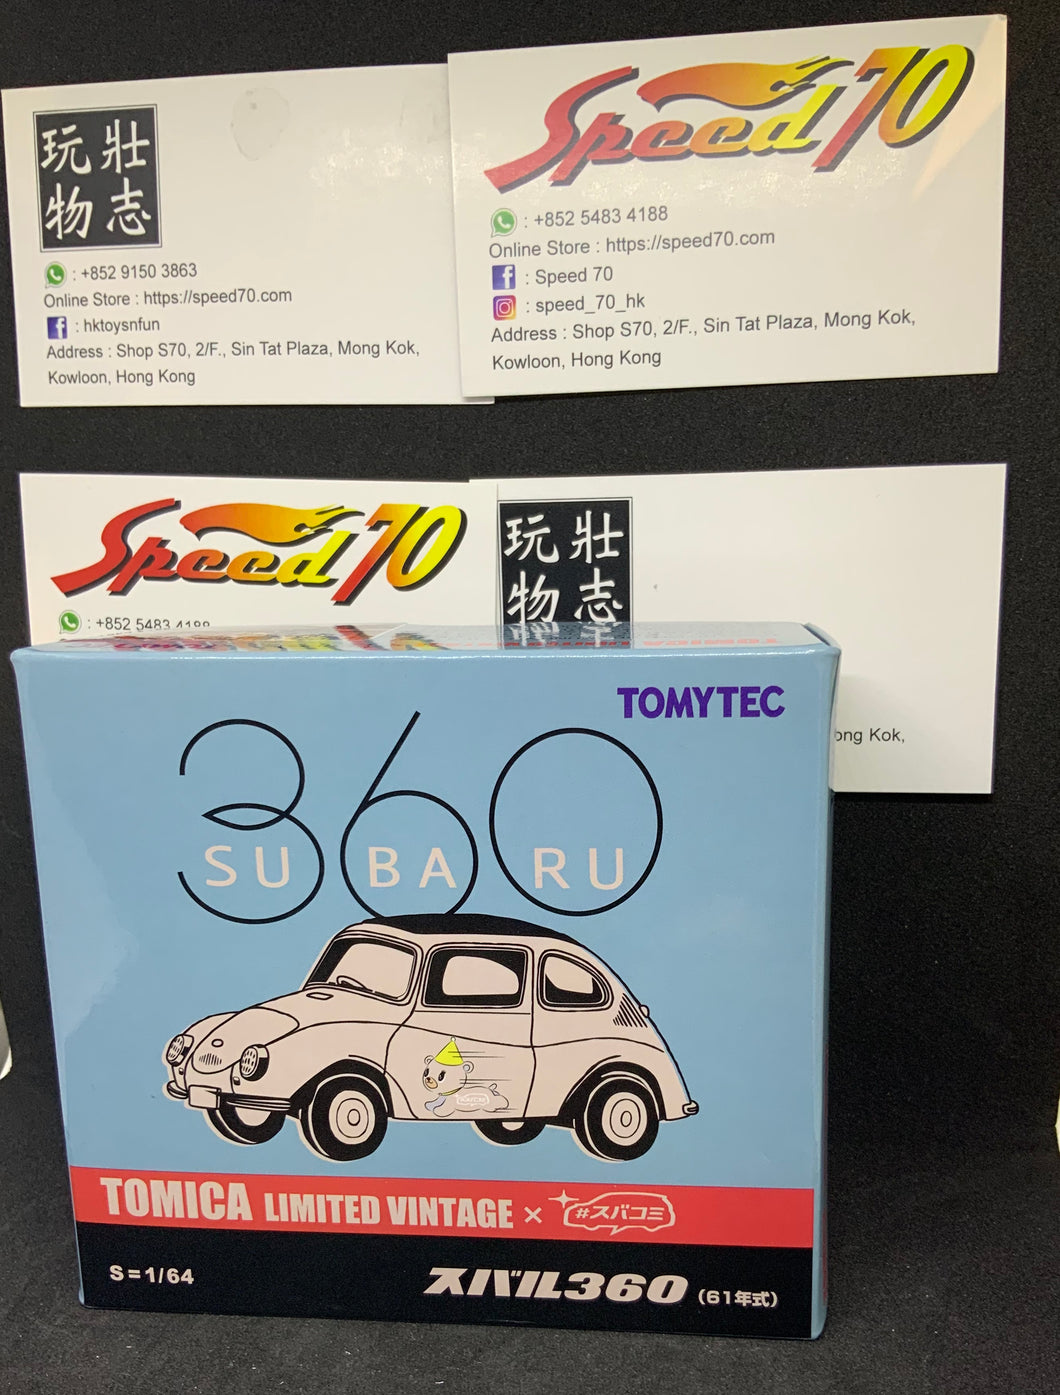 Tomica Limited Vintage Neo TOMYTEC SUBARU 360 (61年式)Wht